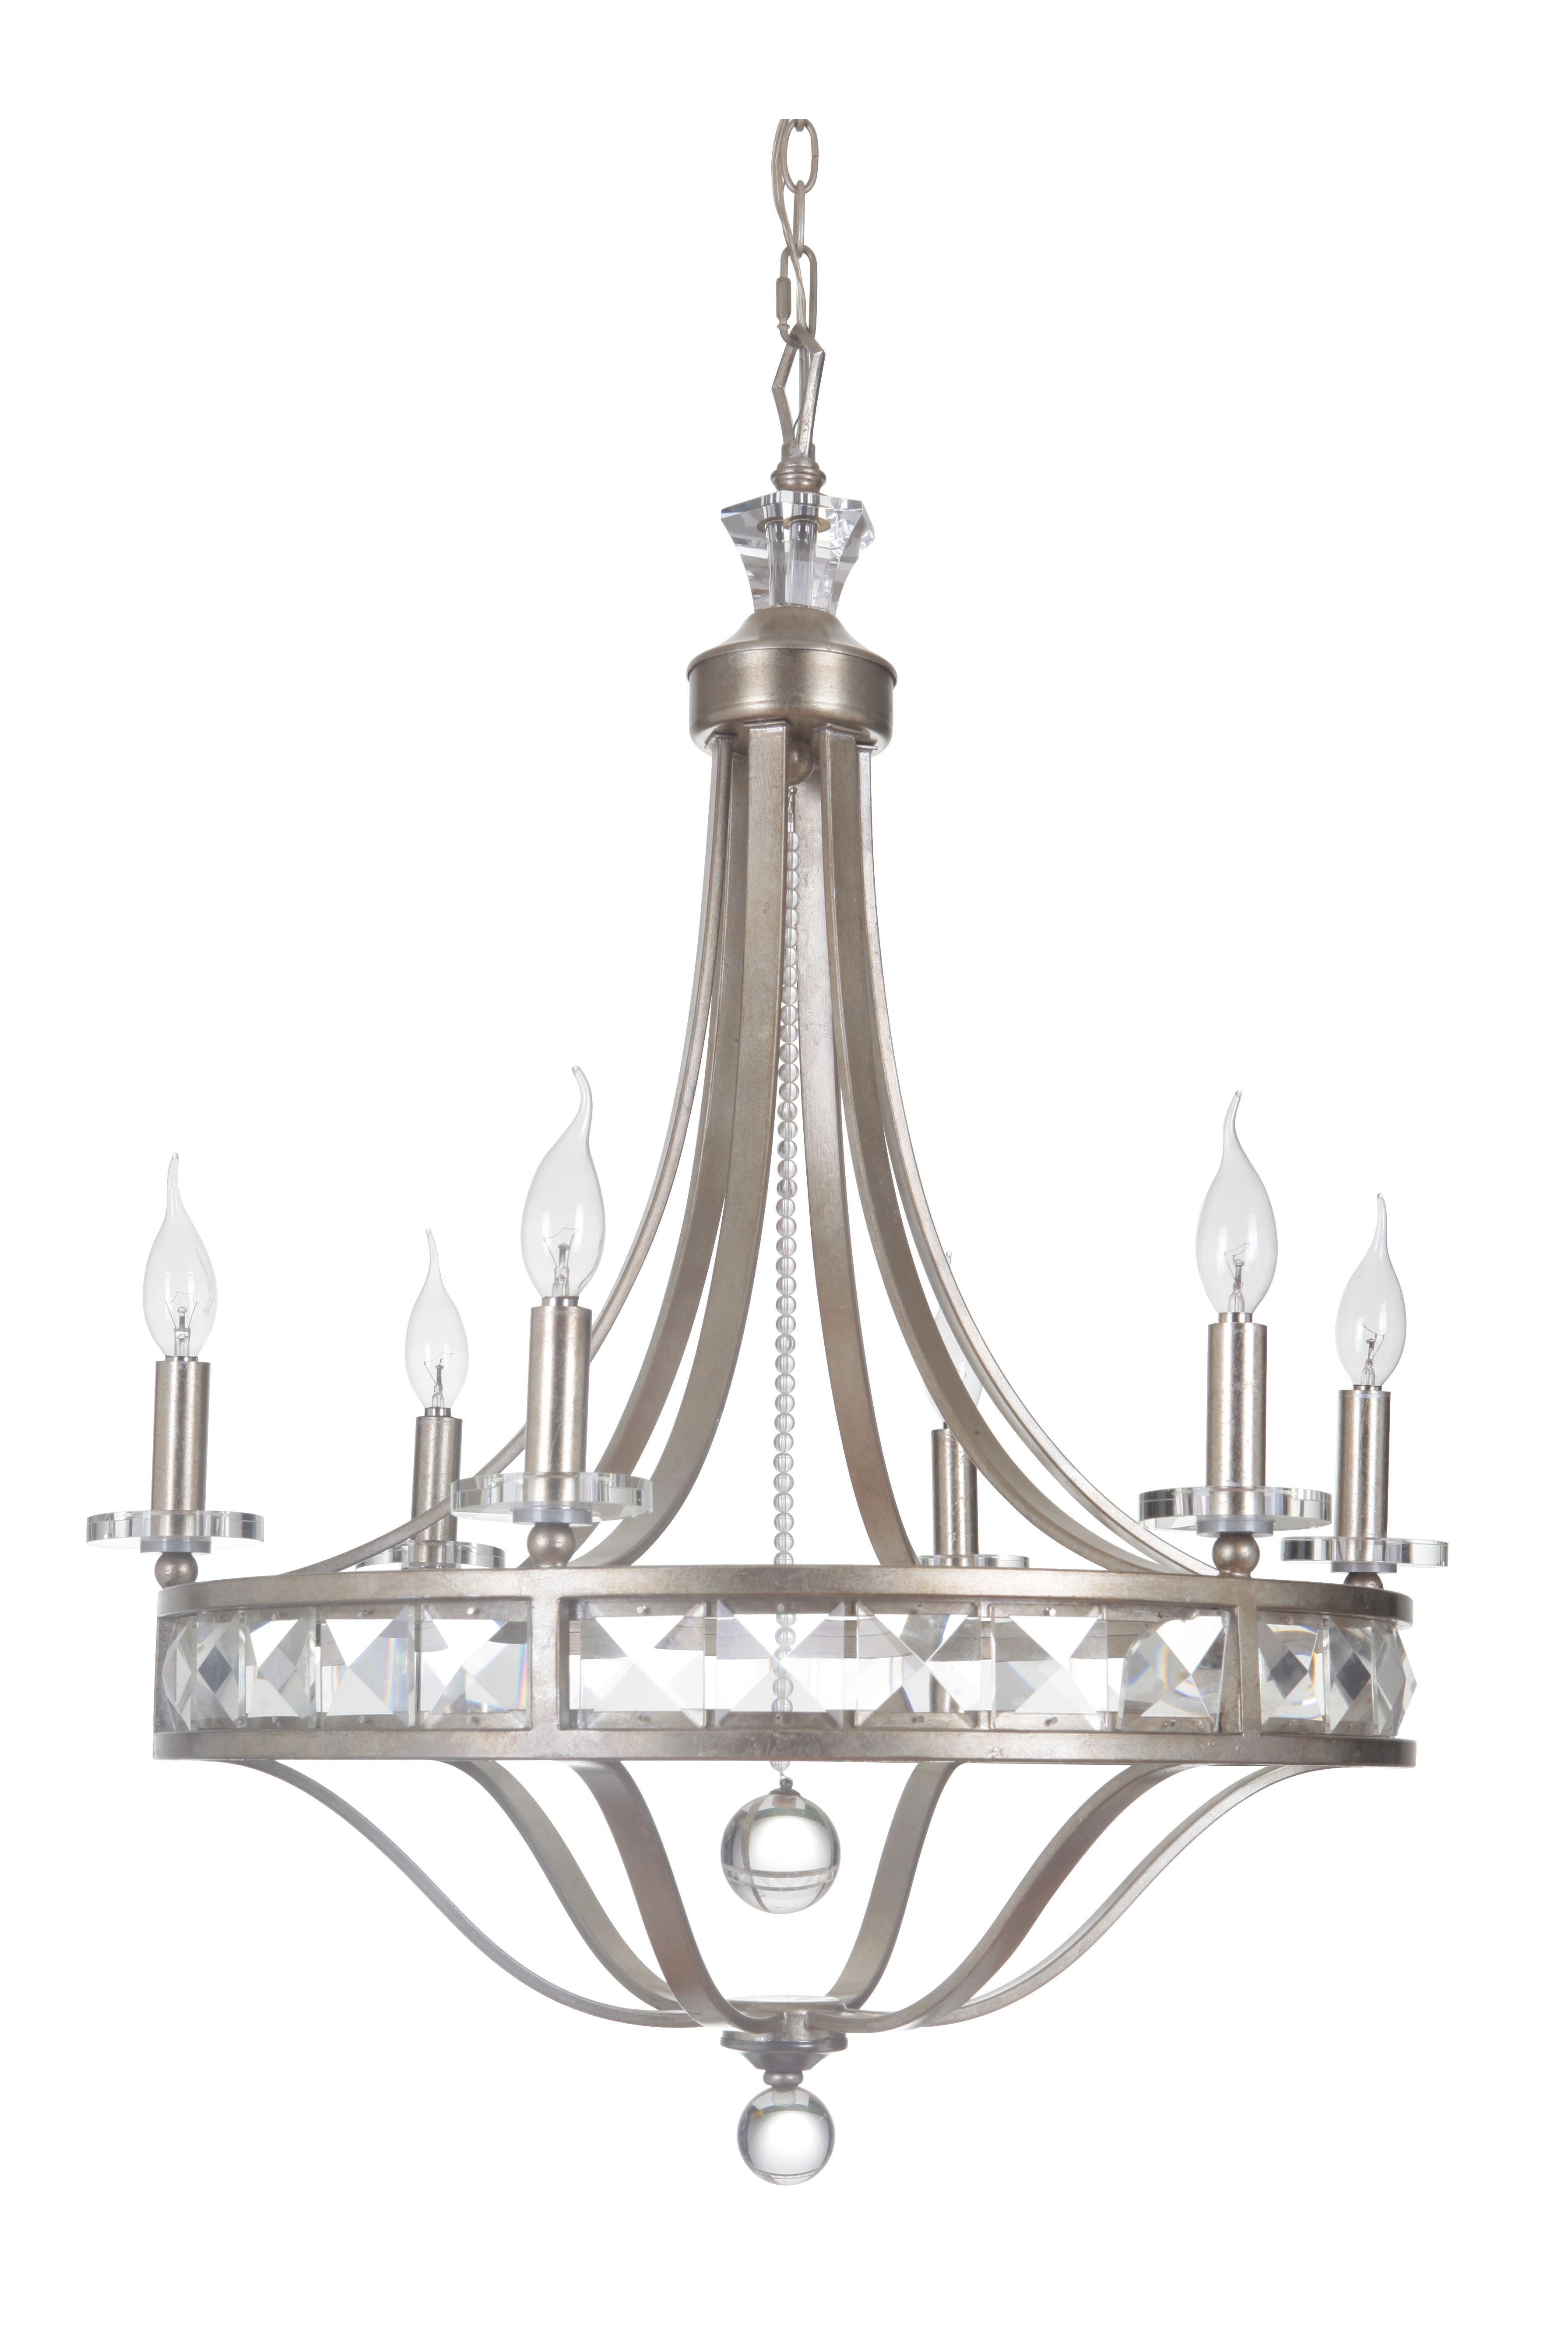 Add Glamour To Any Space With These Amazing Finds From Wilson Lighting Click To See More Sparkle And S With Images Chandelier Lighting Chandelier Shabby Chic Chandelier